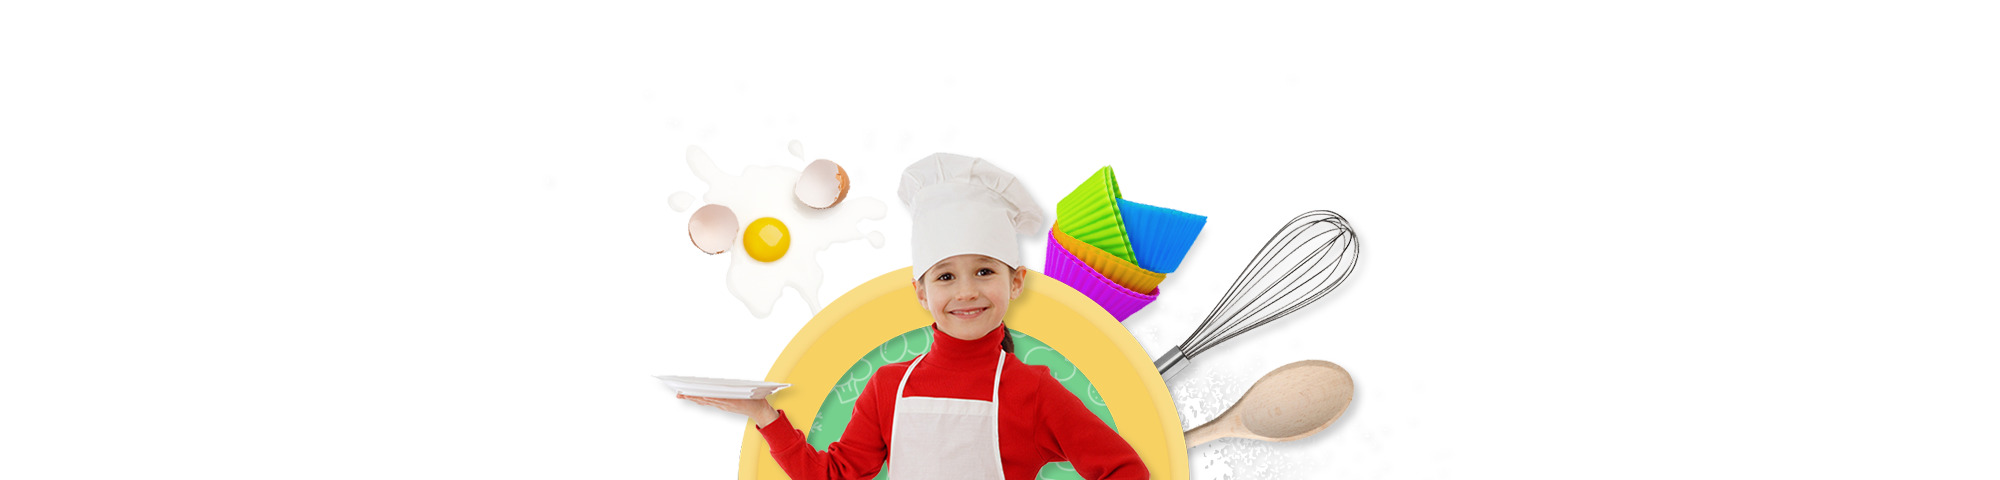 Classes academy for kids. Cooking clipart cookery